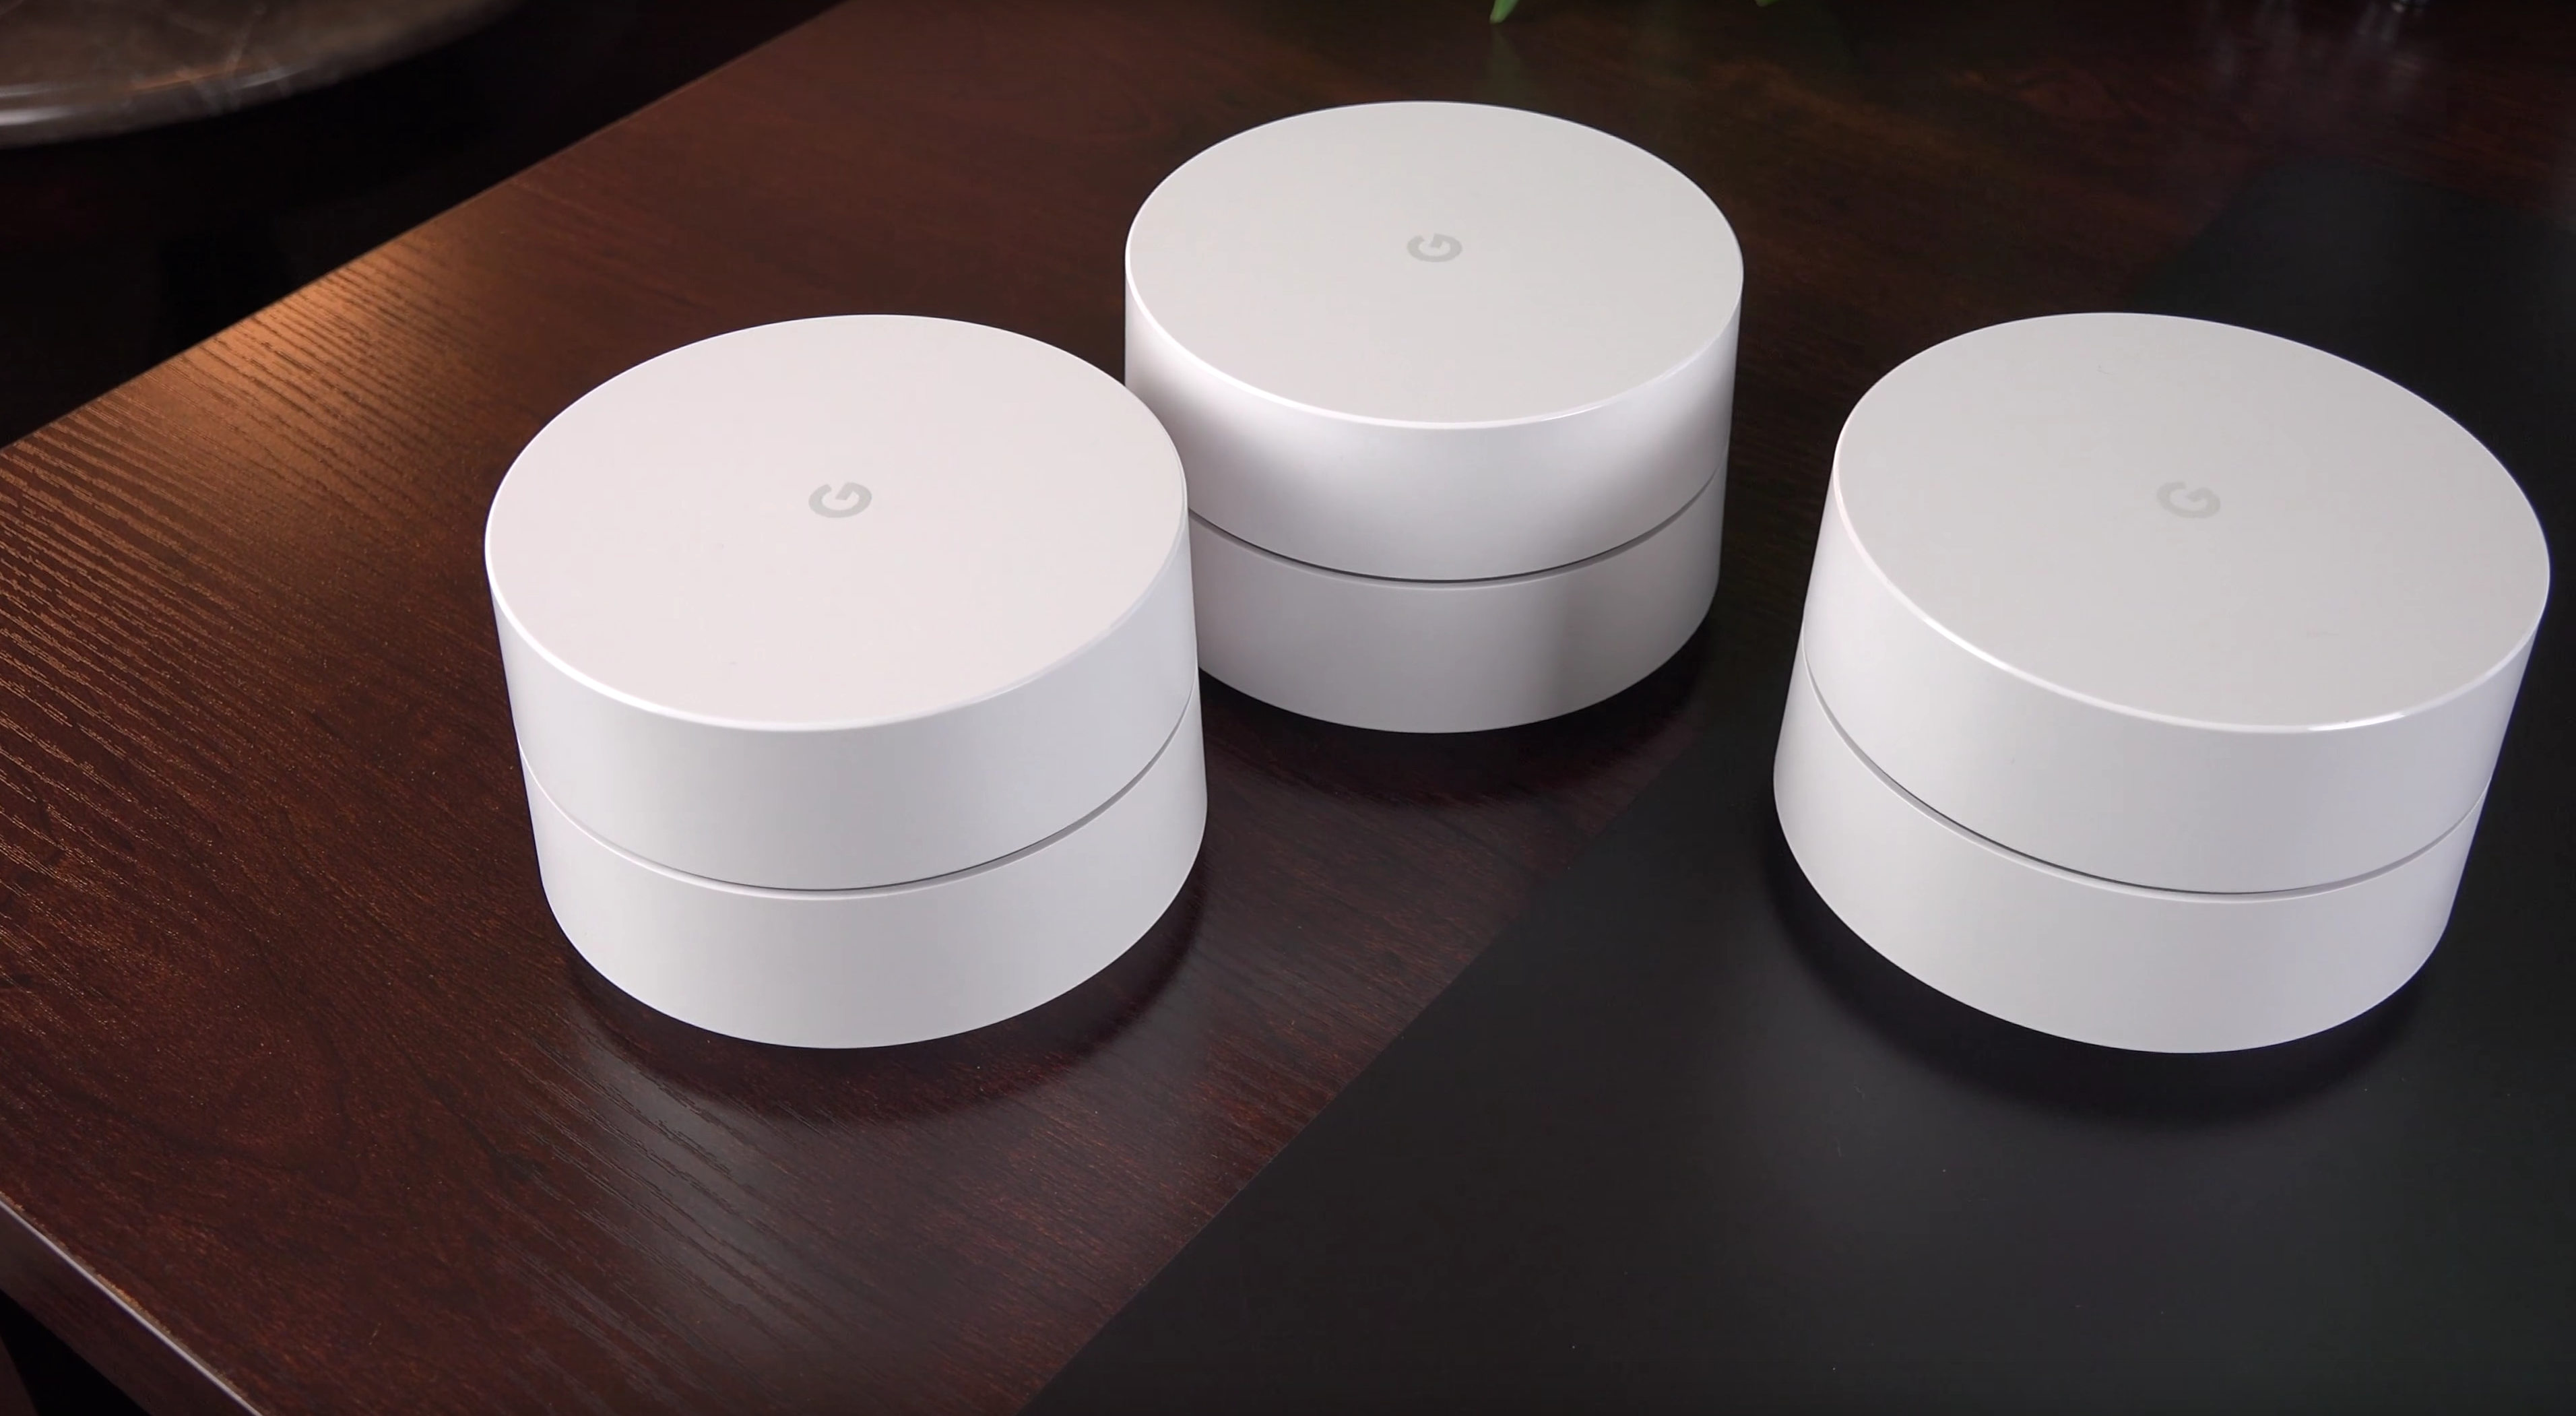 Google Wifi - Wikipedia